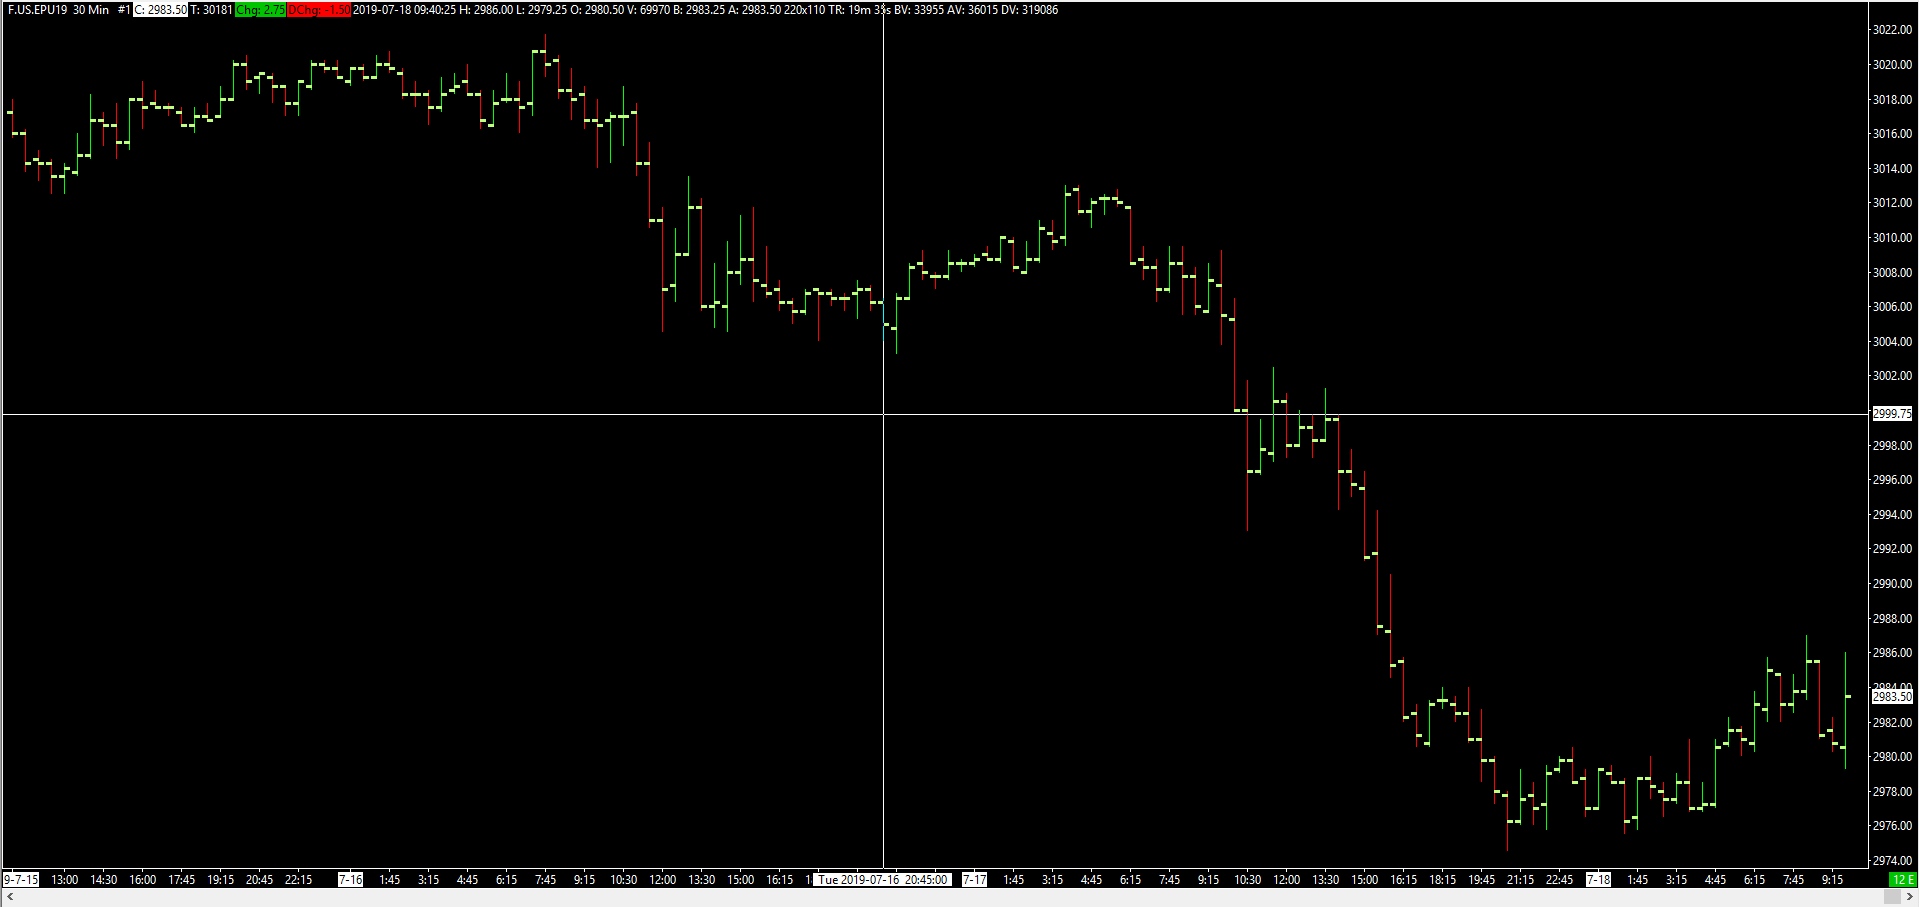 Symbol unkown error when connected to Sierra Chart with CQG